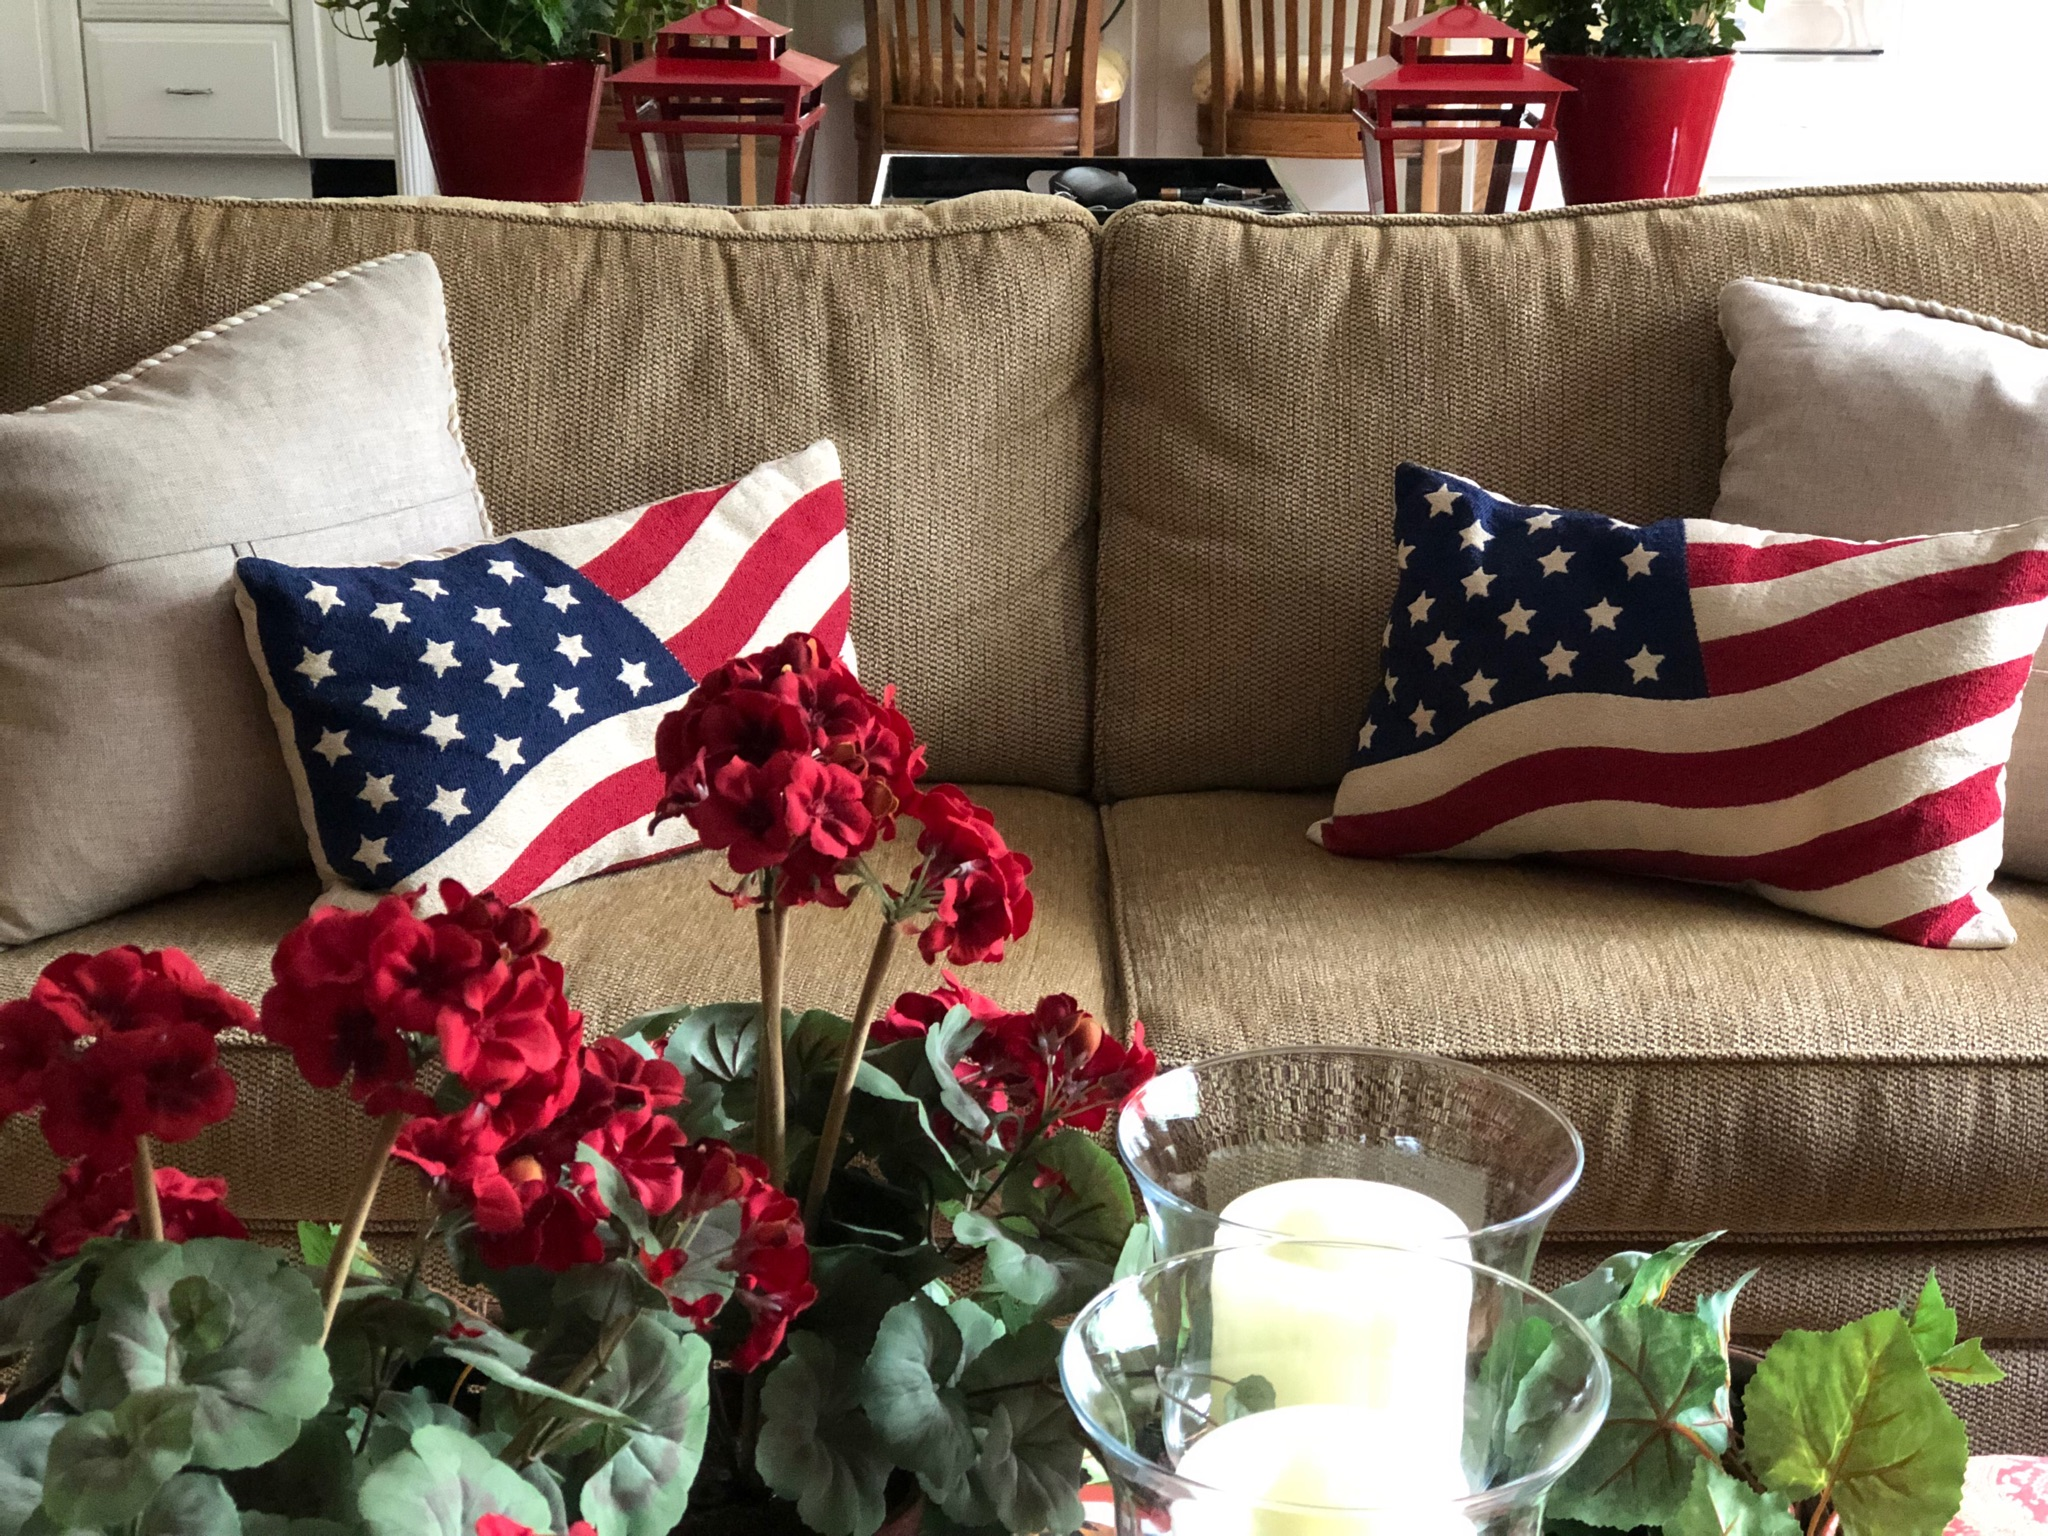 Red, White And Blue Flag Pillows for the sofa